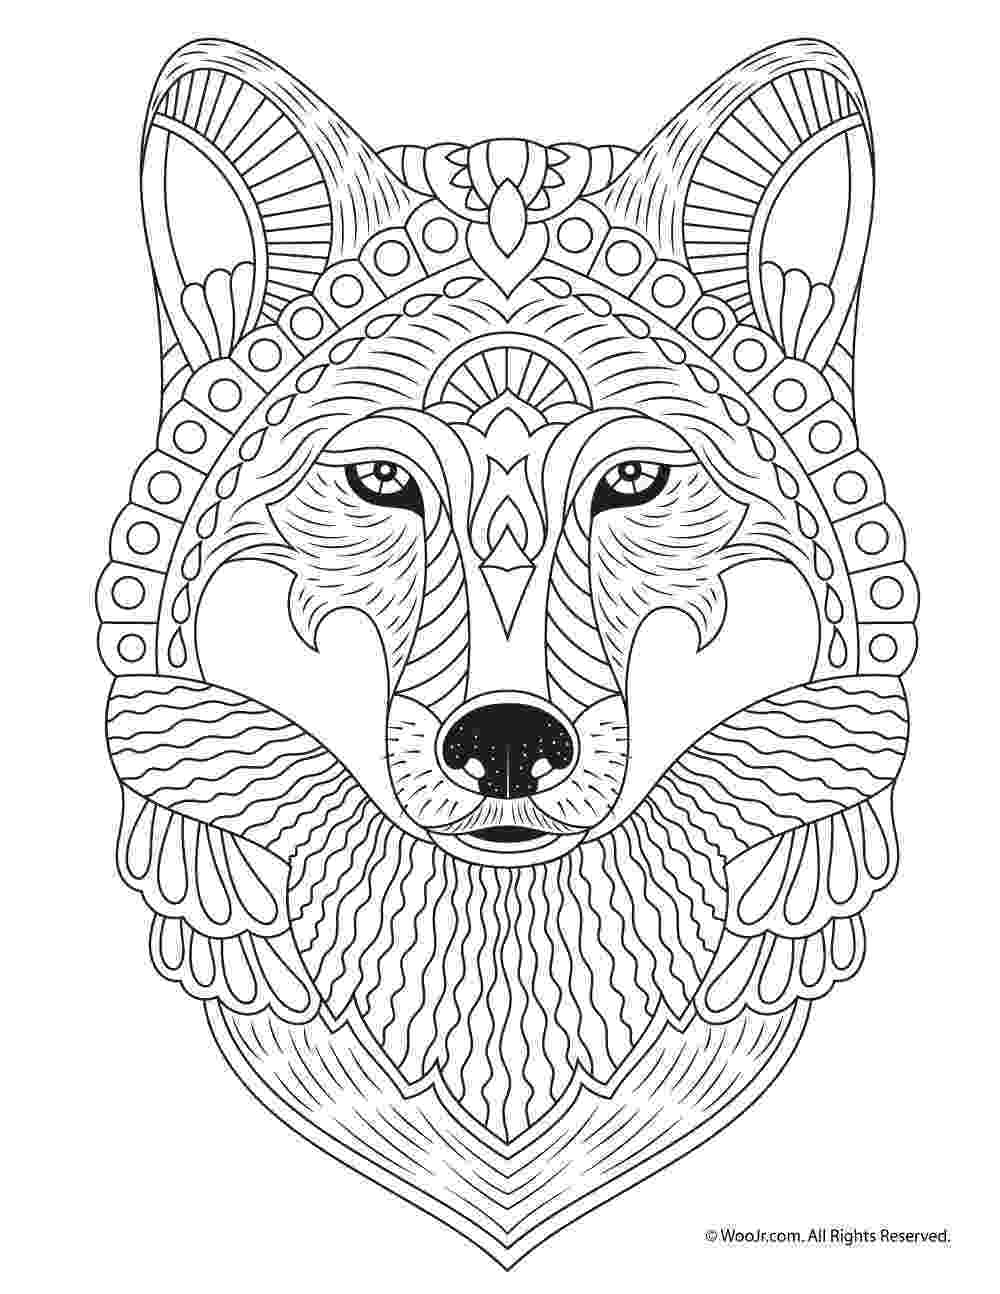 animal coloring book for adults adult coloring pages animals best coloring pages for kids animal for coloring book adults